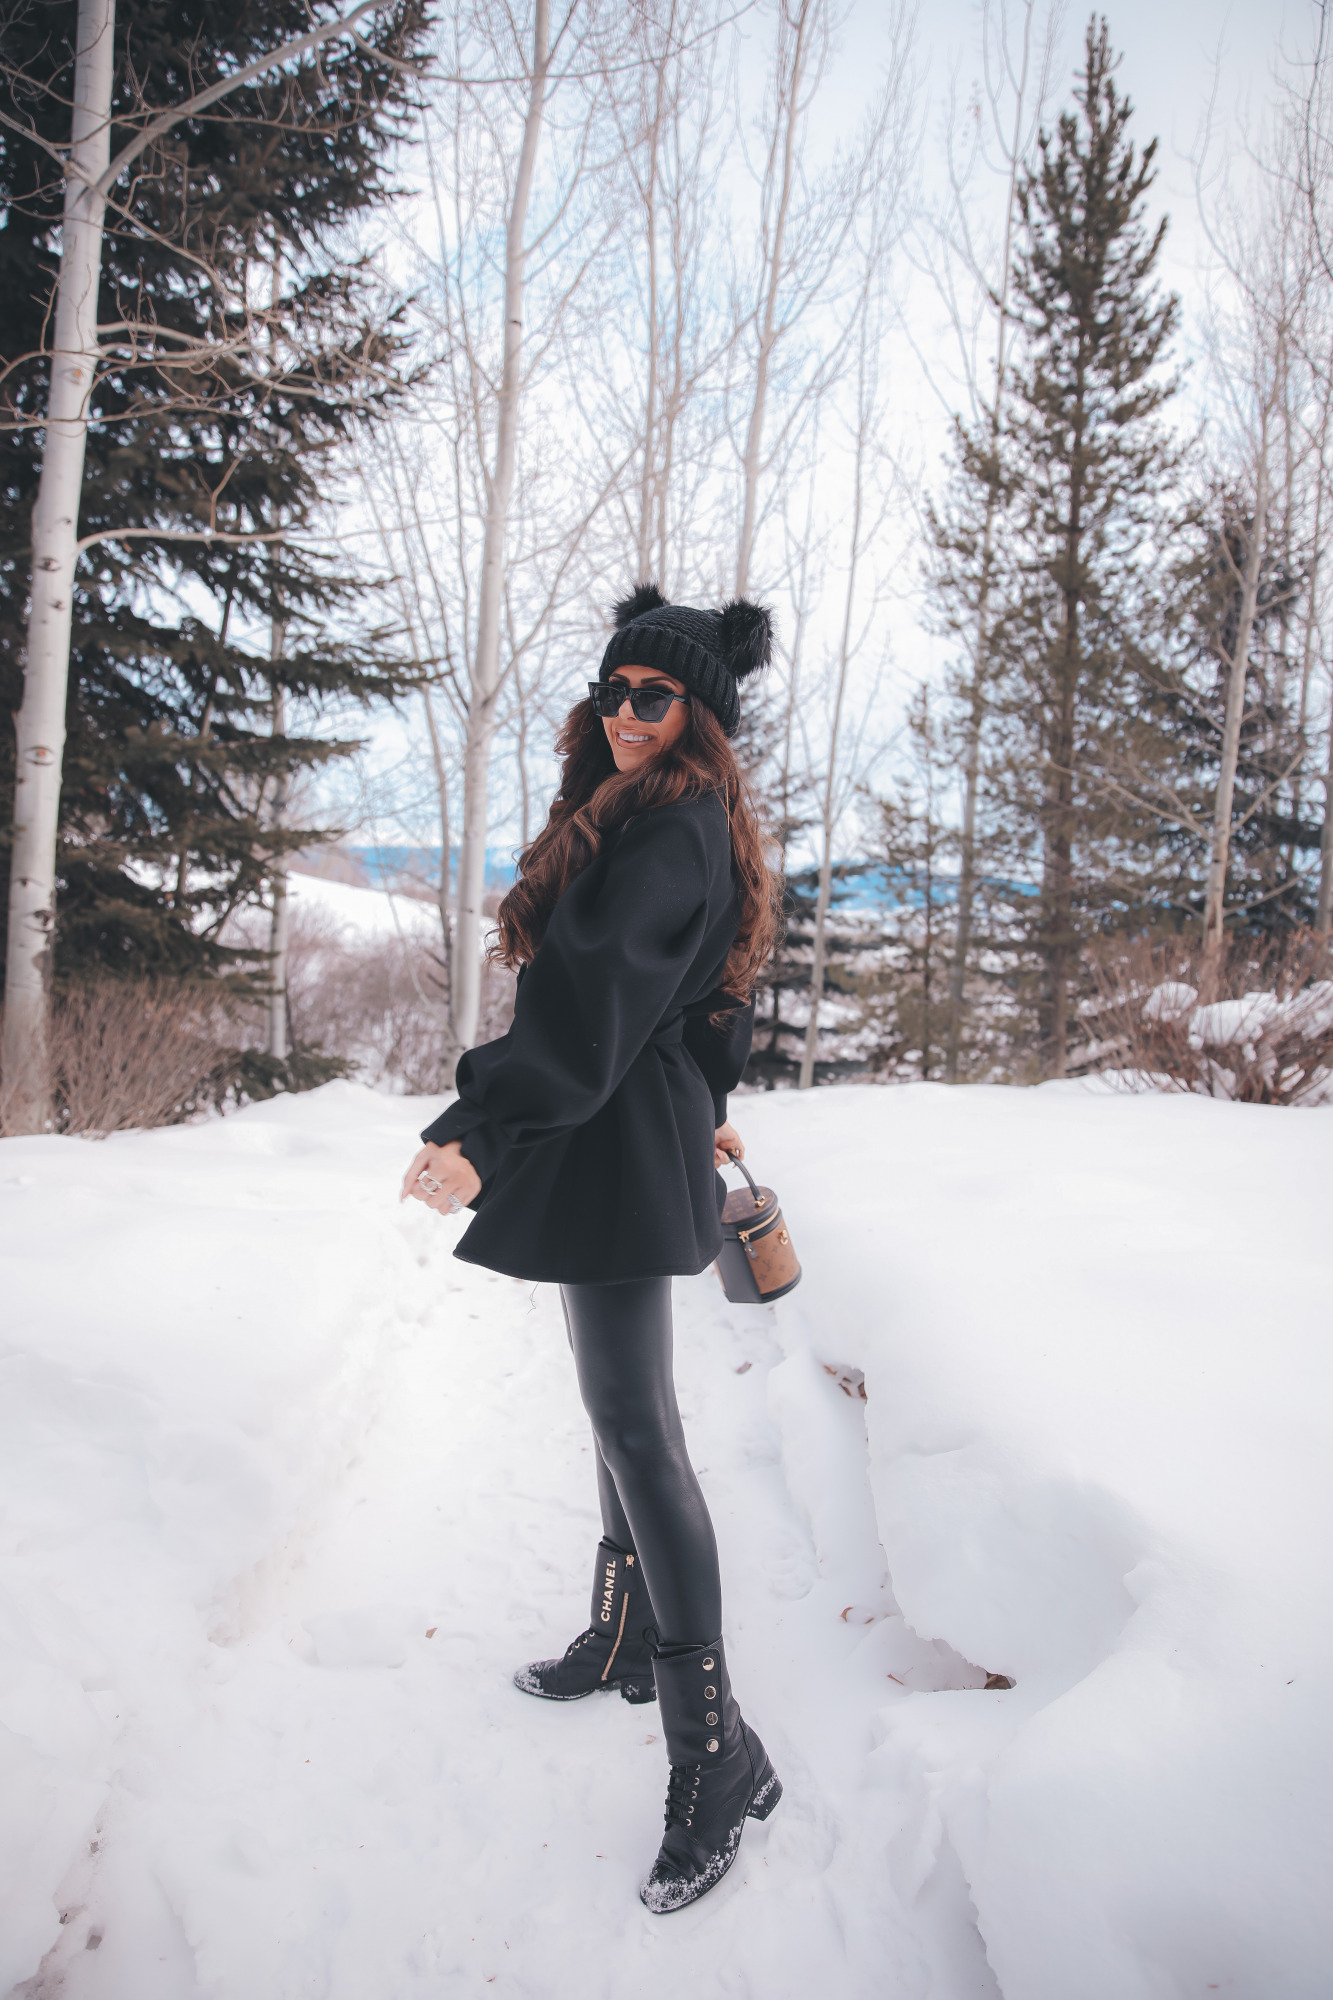 louis vuitton cannes bag, amazon cat eye sunglasses, pinterest winter fashion outfit ideas, emily gemma |Dressing Up by popular US fashion blog, The Sweetest Thing: image of Emily Gemma standing outside in the snow and wearing a Good American bodysuit, commando leggings, Chanel boots, Amazon sunglasses, Storets puff sleeve coat, Tasha double pom beanie, and holding a Louis Vuitton bag.